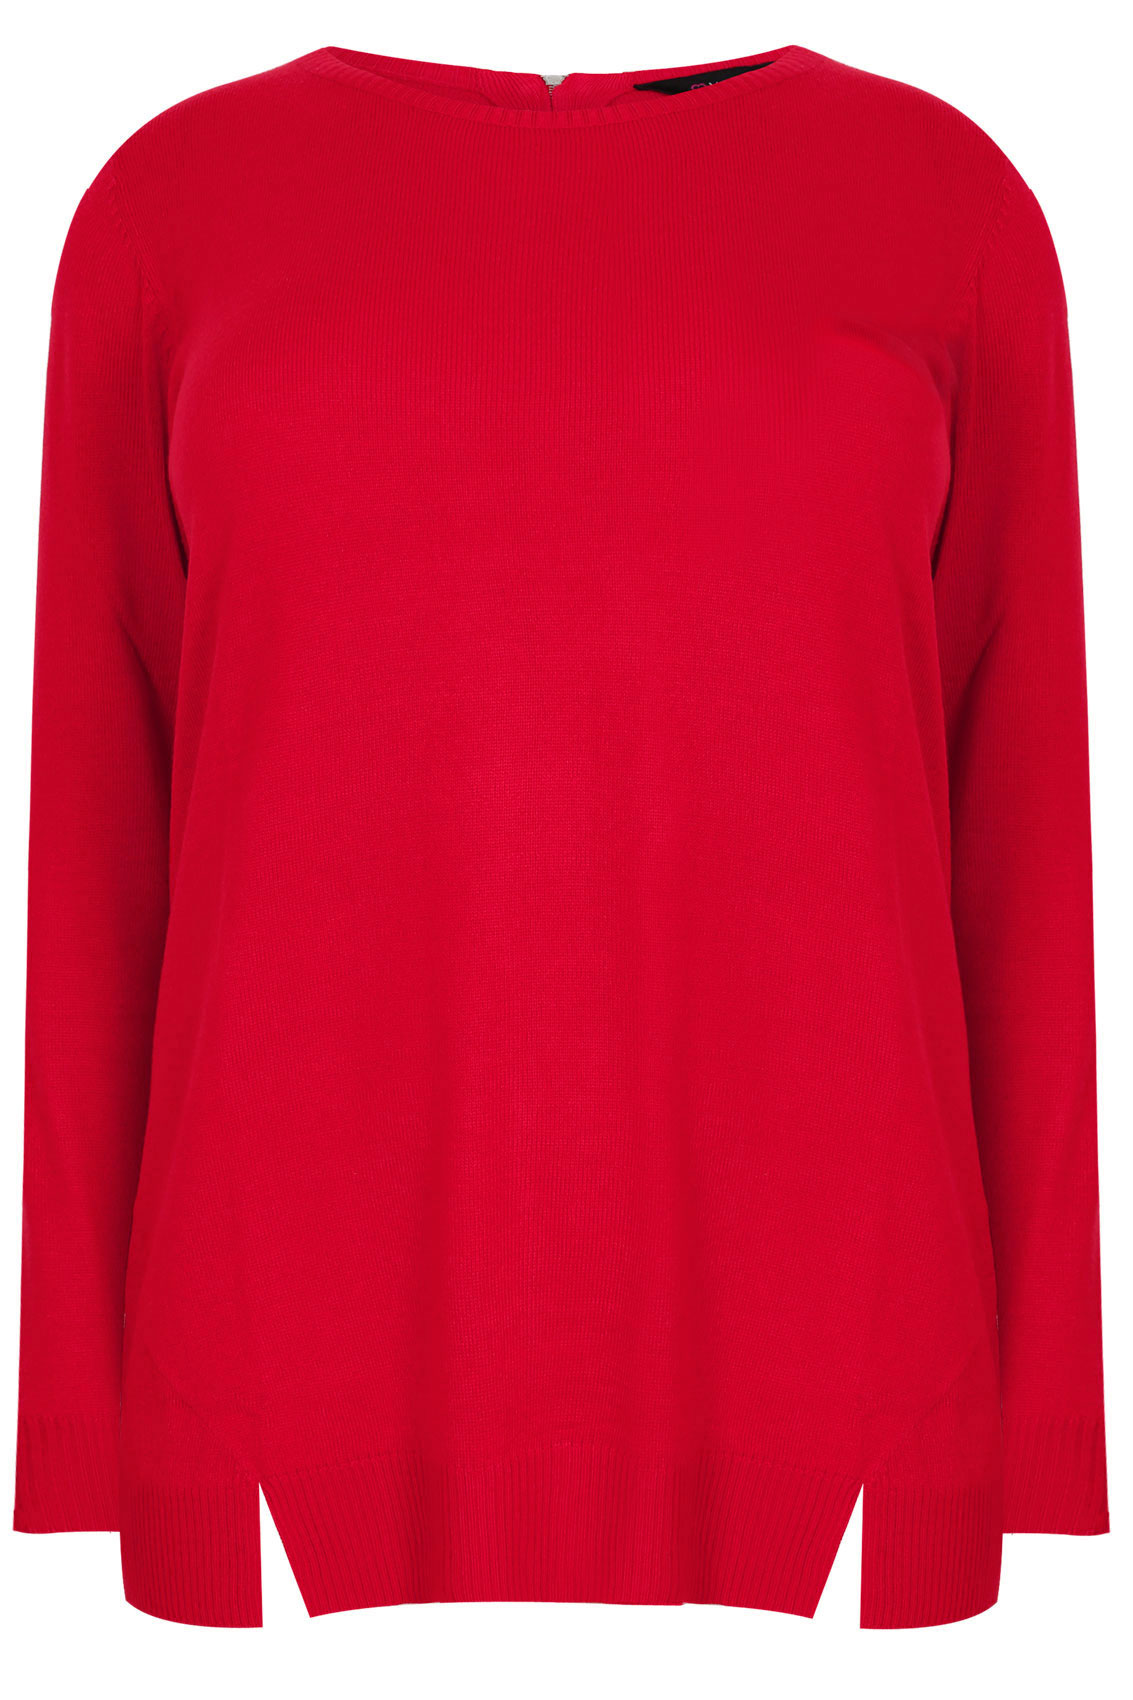 % cotton, red fleece jumper with red embroidered Apéro logo. Note: We recommend going up a size for a more oversized/looser fit. GIVE BACK - 5% of all our online sales go to Women's Community Sh.